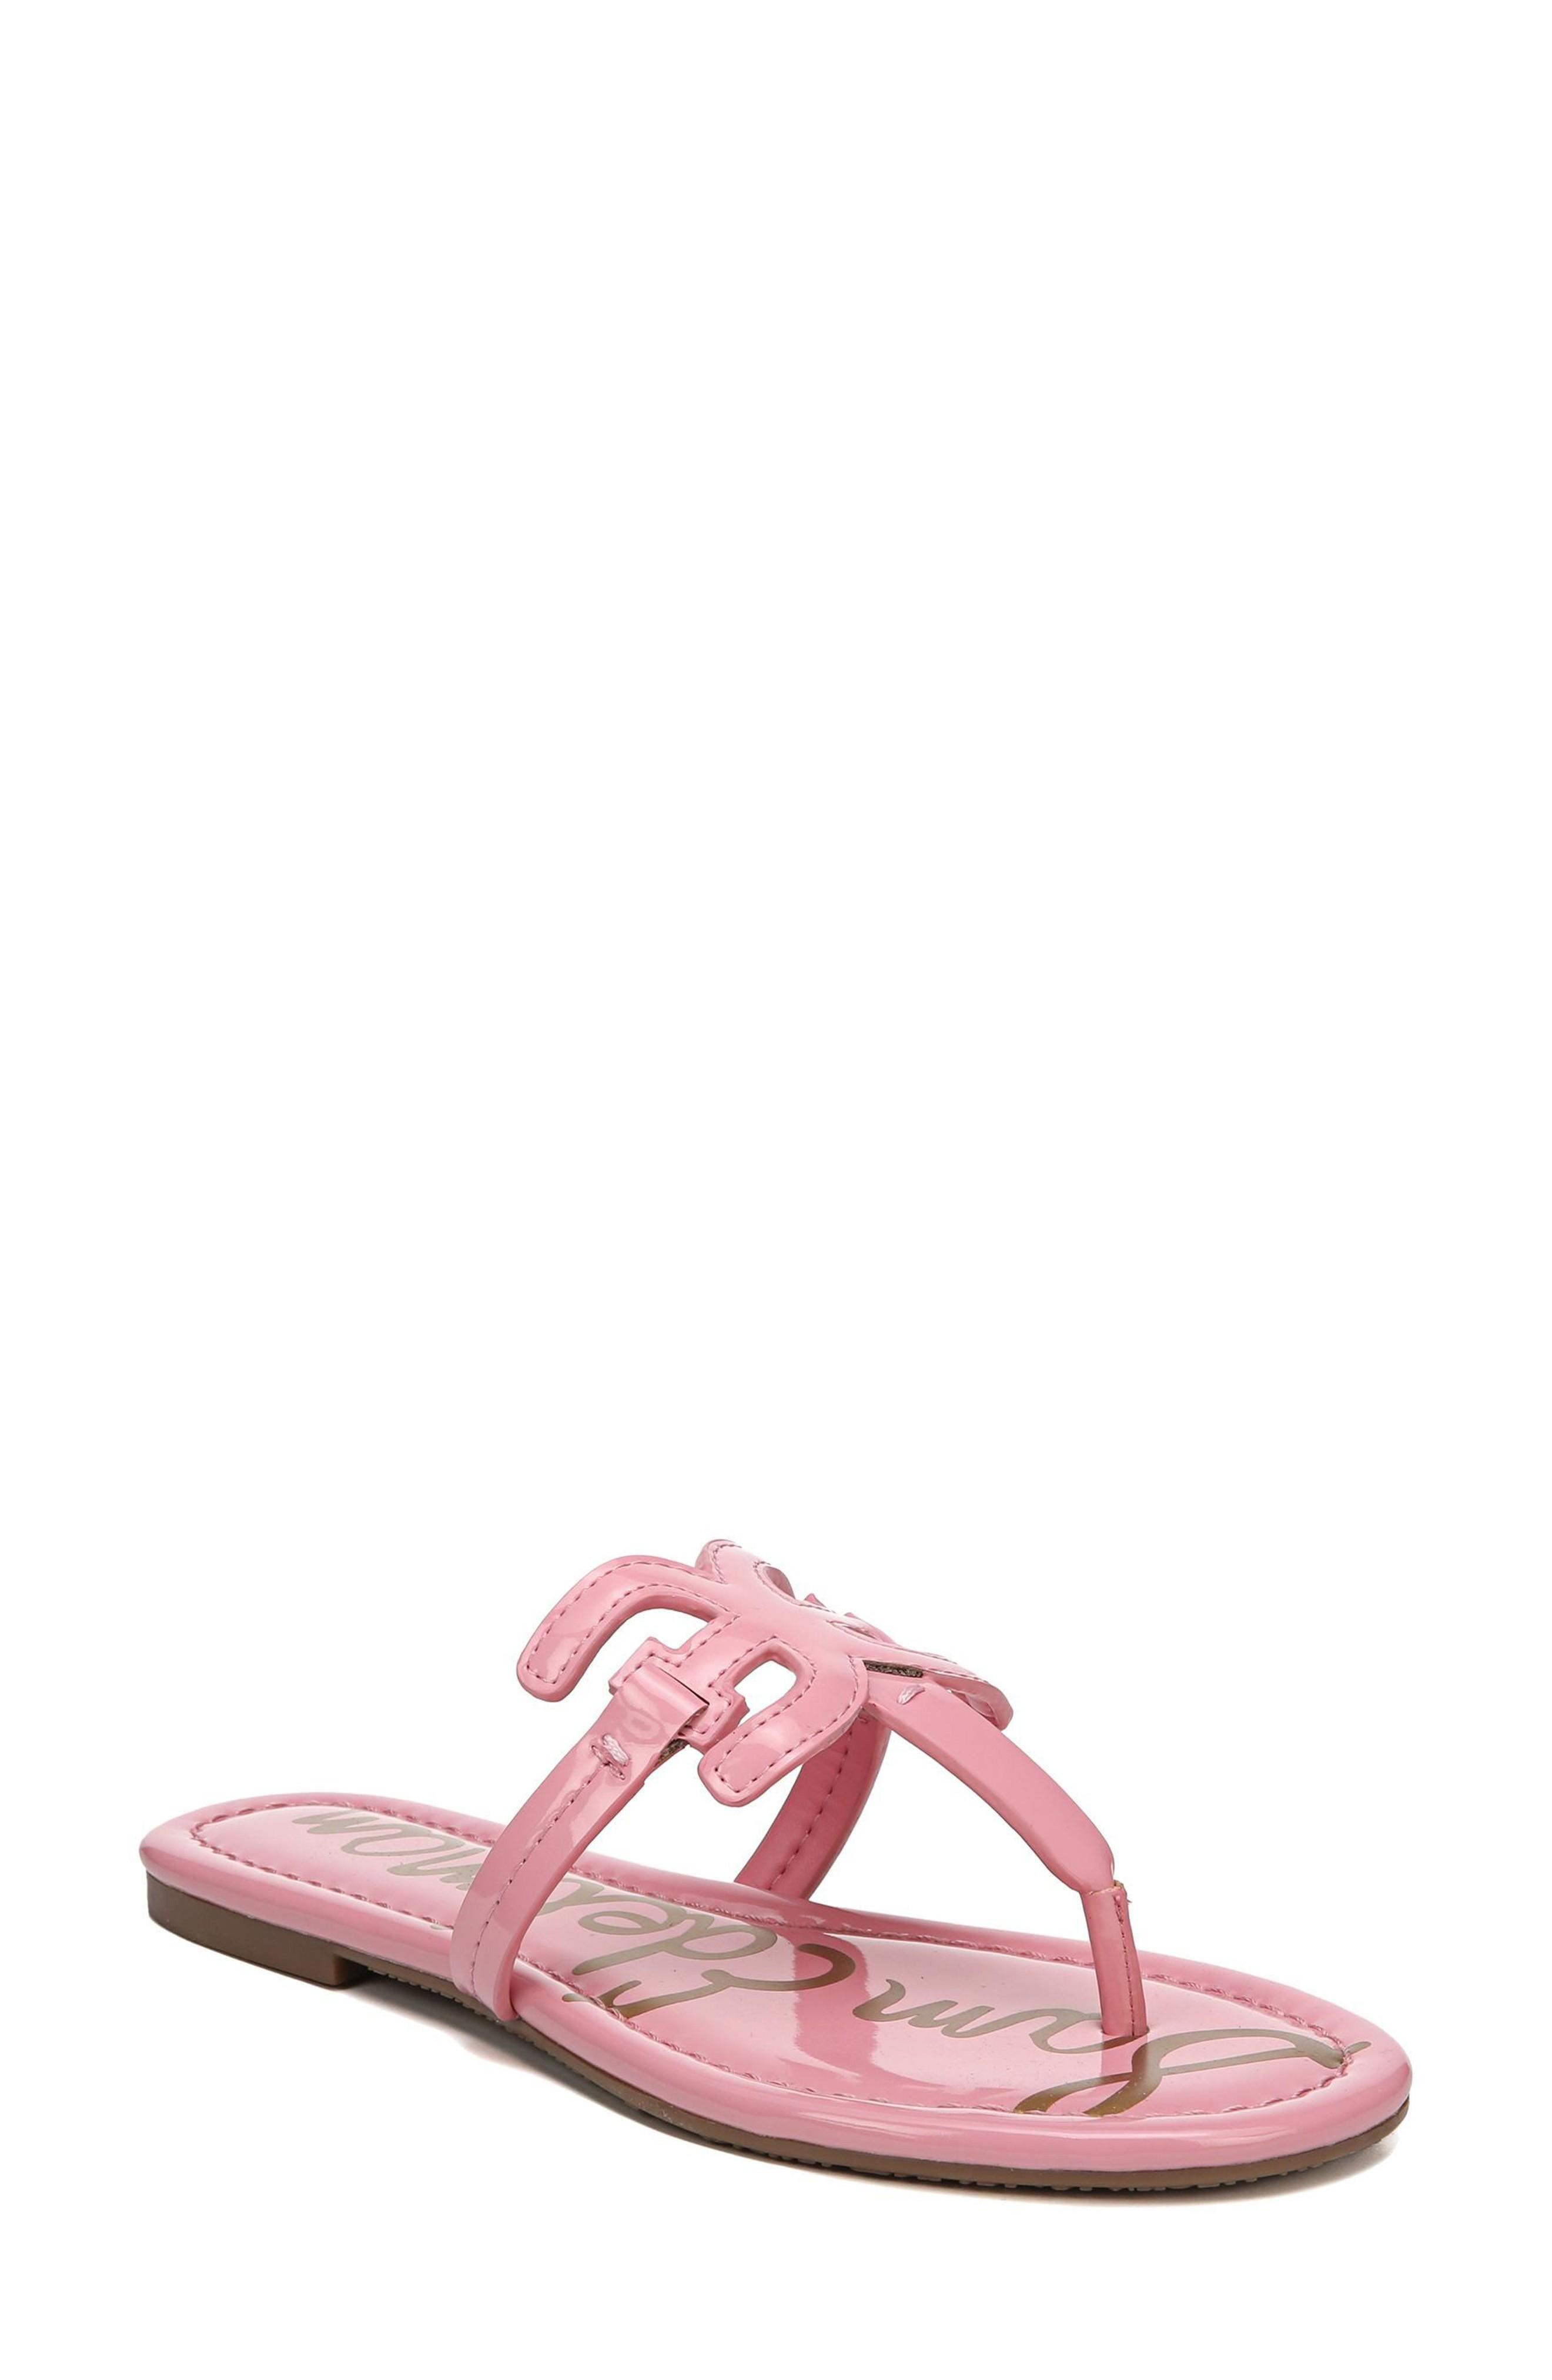 a5612f0a3d8 Sam Edelman Carter Thong In Pink Lemonade Patent Leather